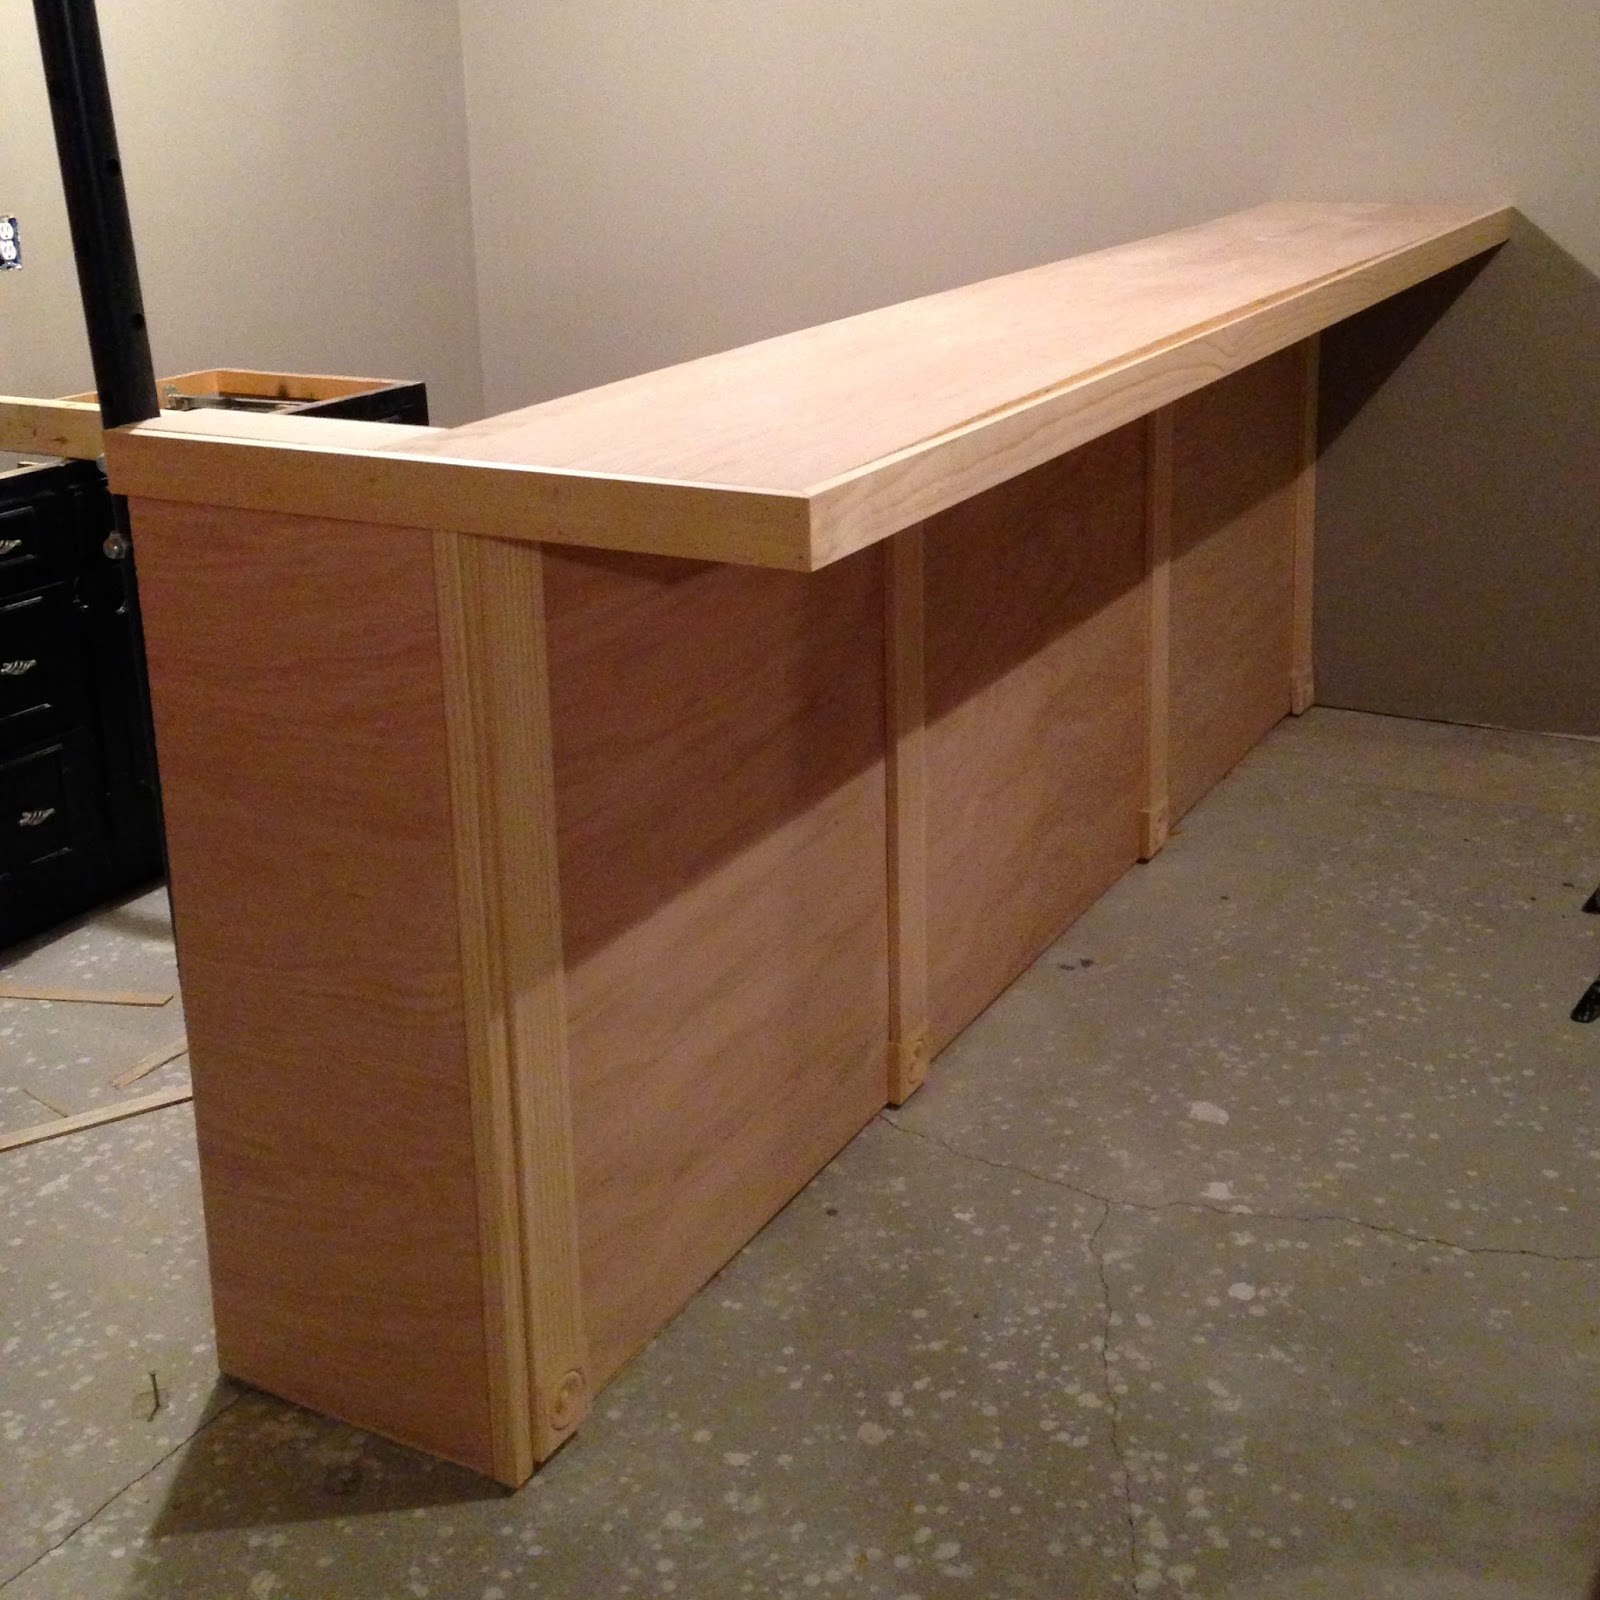 DIY Why Spend More: Build your own bar with faux granite ...